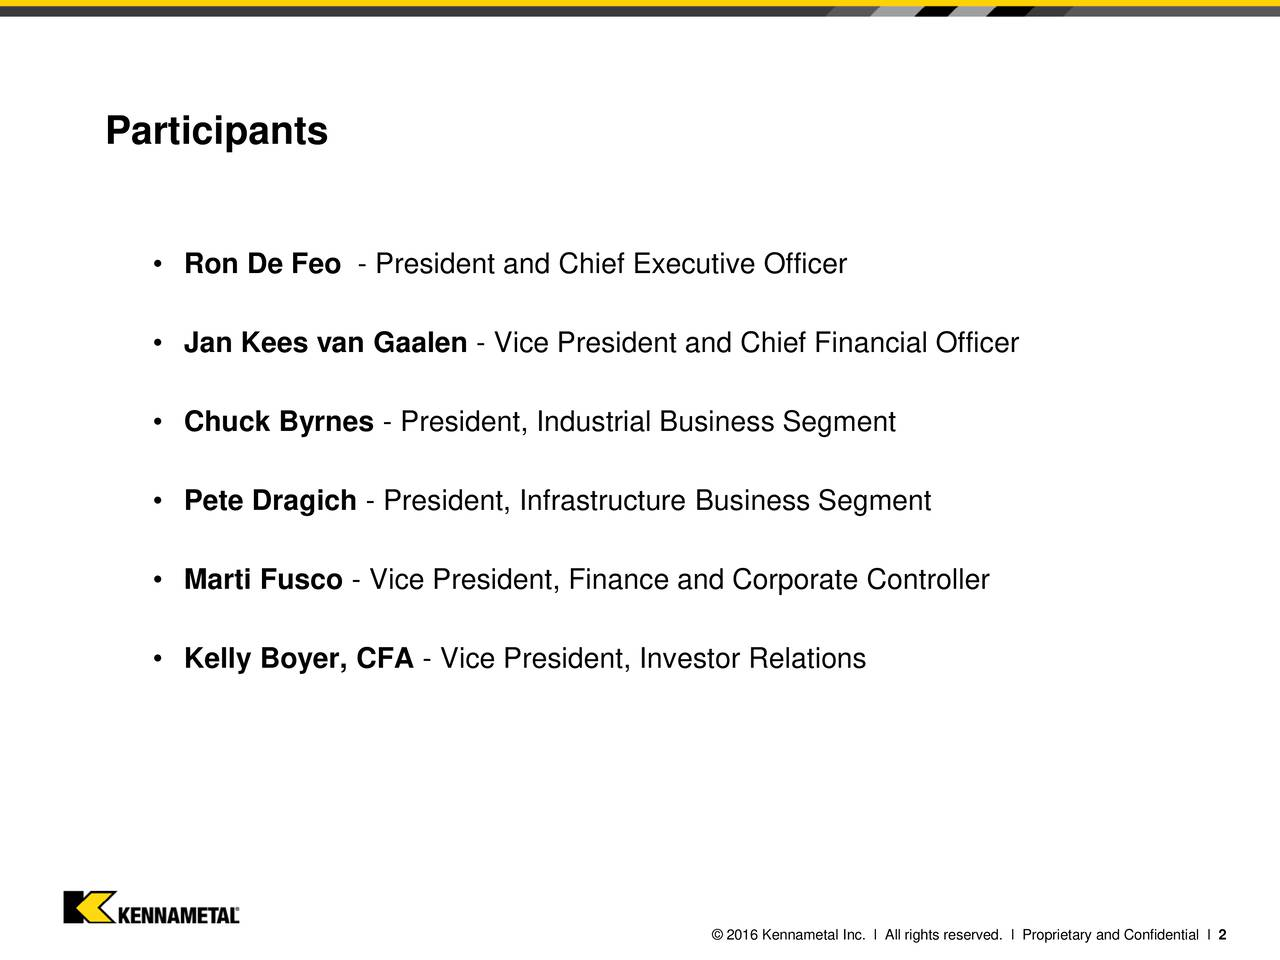 Ron De Feo - President and Chief Executive Officer Jan Kees van Gaalen - Vice President and Chief Financial Officer Chuck Byrnes - President, Industrial Business Segment Pete Dragich - President, Infrastructure Business Segment Marti Fusco - Vice President, Finance and Corporate Controller Kelly Boyer, CFA - Vice President, Investor Relations 2016 Kennametal Inc. l All rights reserved. l Proprietary and Confidential l 2